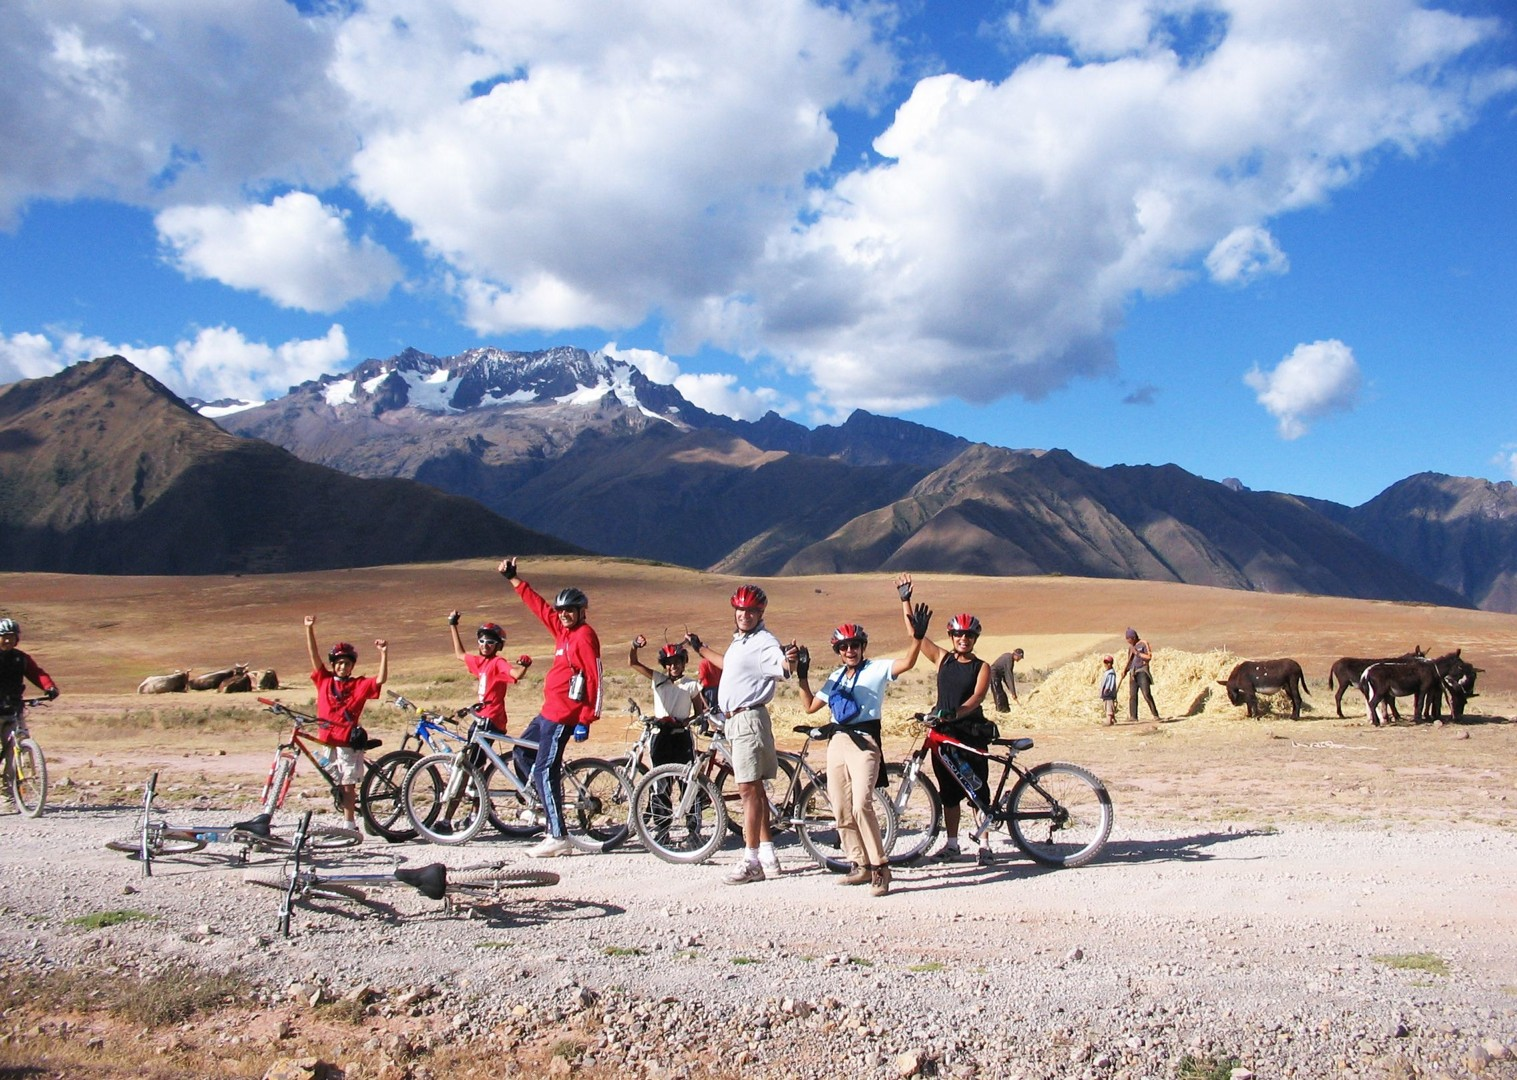 peru-family-cycling-holiday-skedaddle.jpg - Peru - Andean Adventure - Guided Family Cycling Holiday - Family Cycling